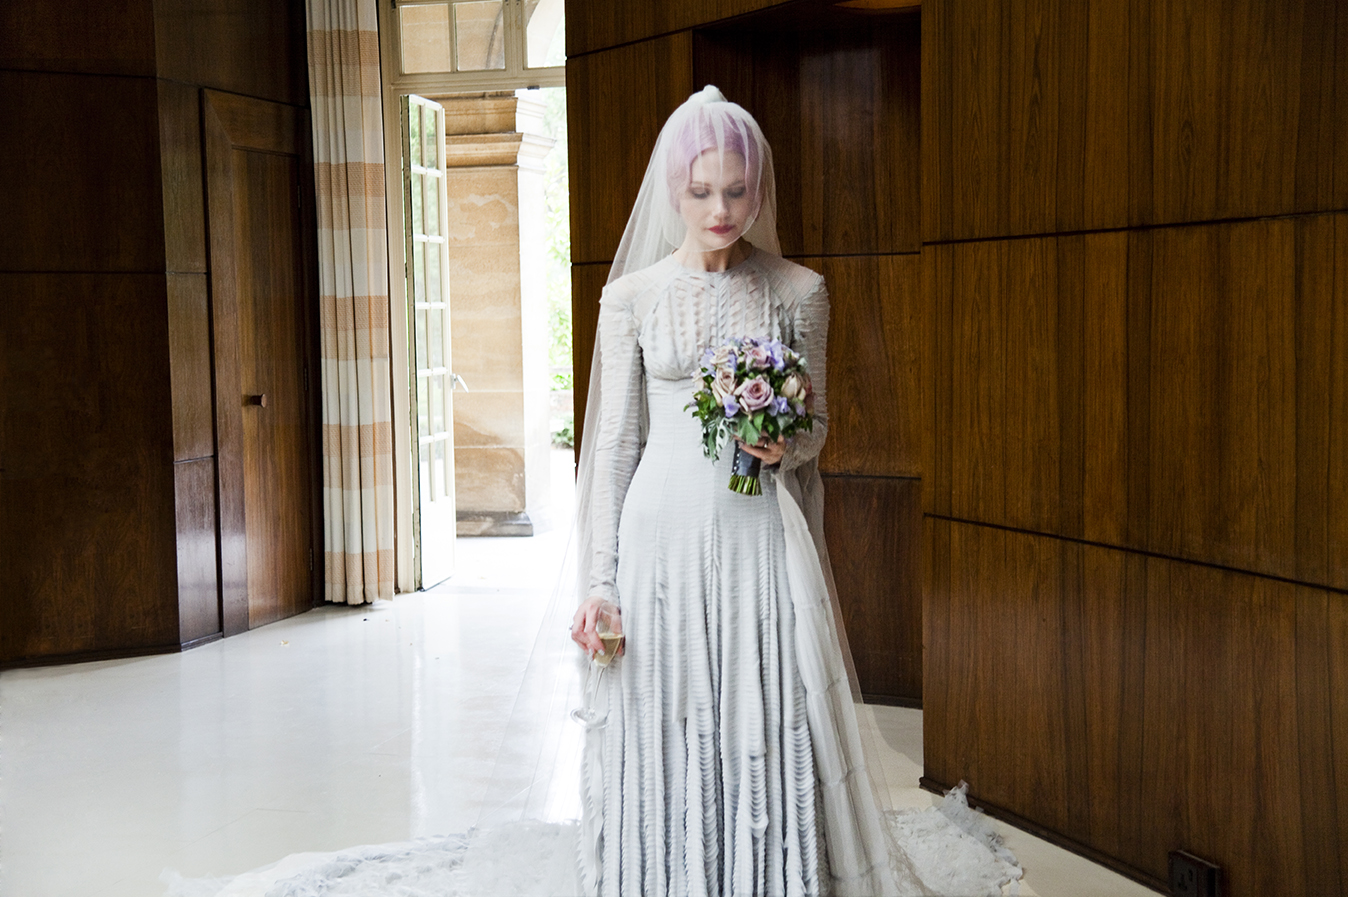 Pale grey slashed chiffon wedding dress designed by Gareth Pugh and veil by Stephen Jones 2011. Courtesy of Katie Shillingford. Photo Amy Gwatkin